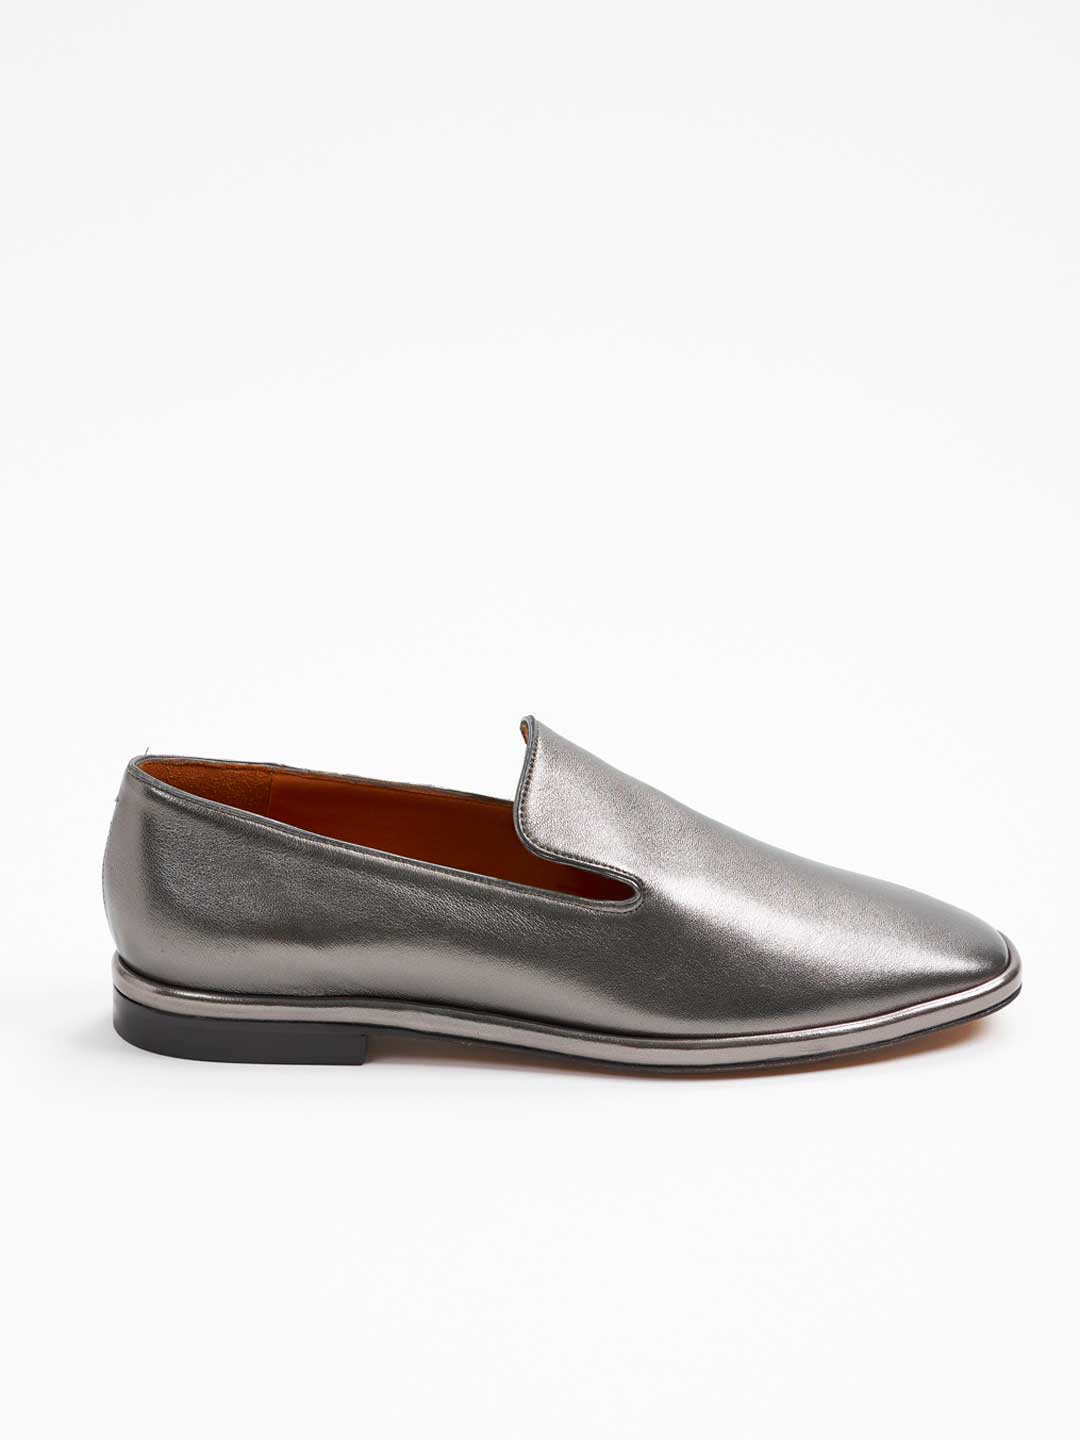 OLYMPIA Metallic Leather Slip-on Shoes - Grey